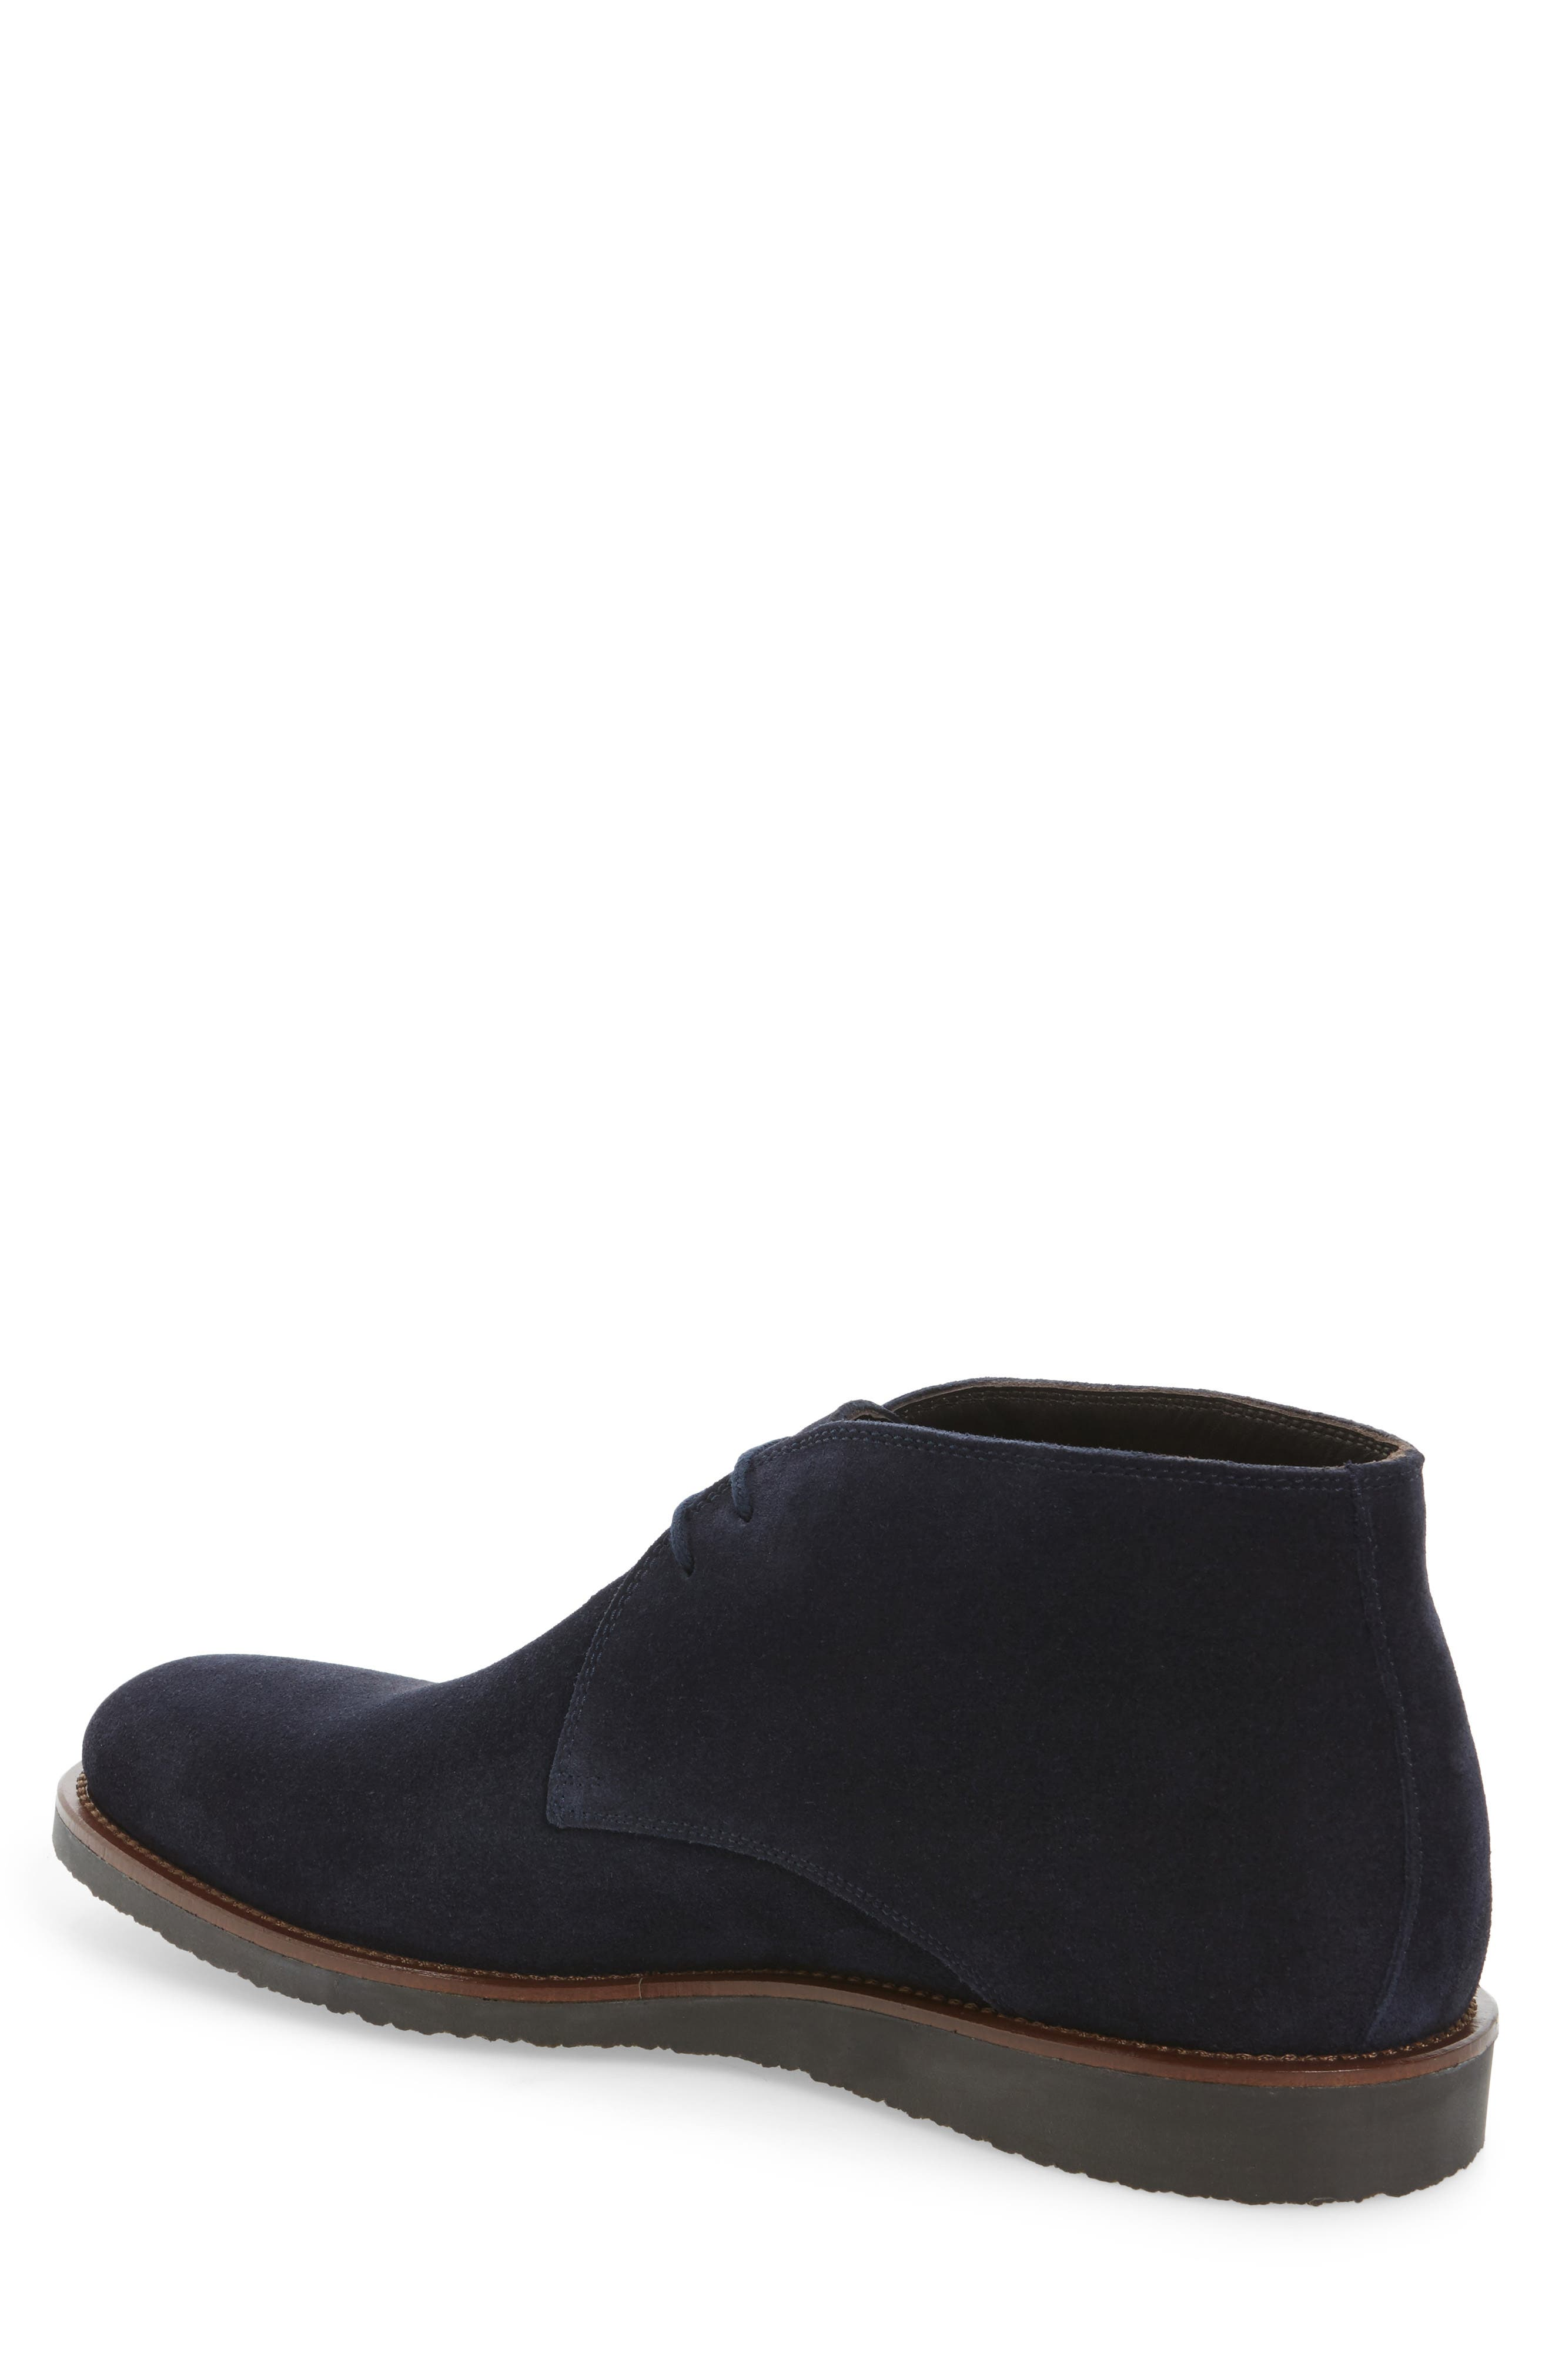 Franklin Chukka Boot,                             Alternate thumbnail 2, color,                             Blue Suede